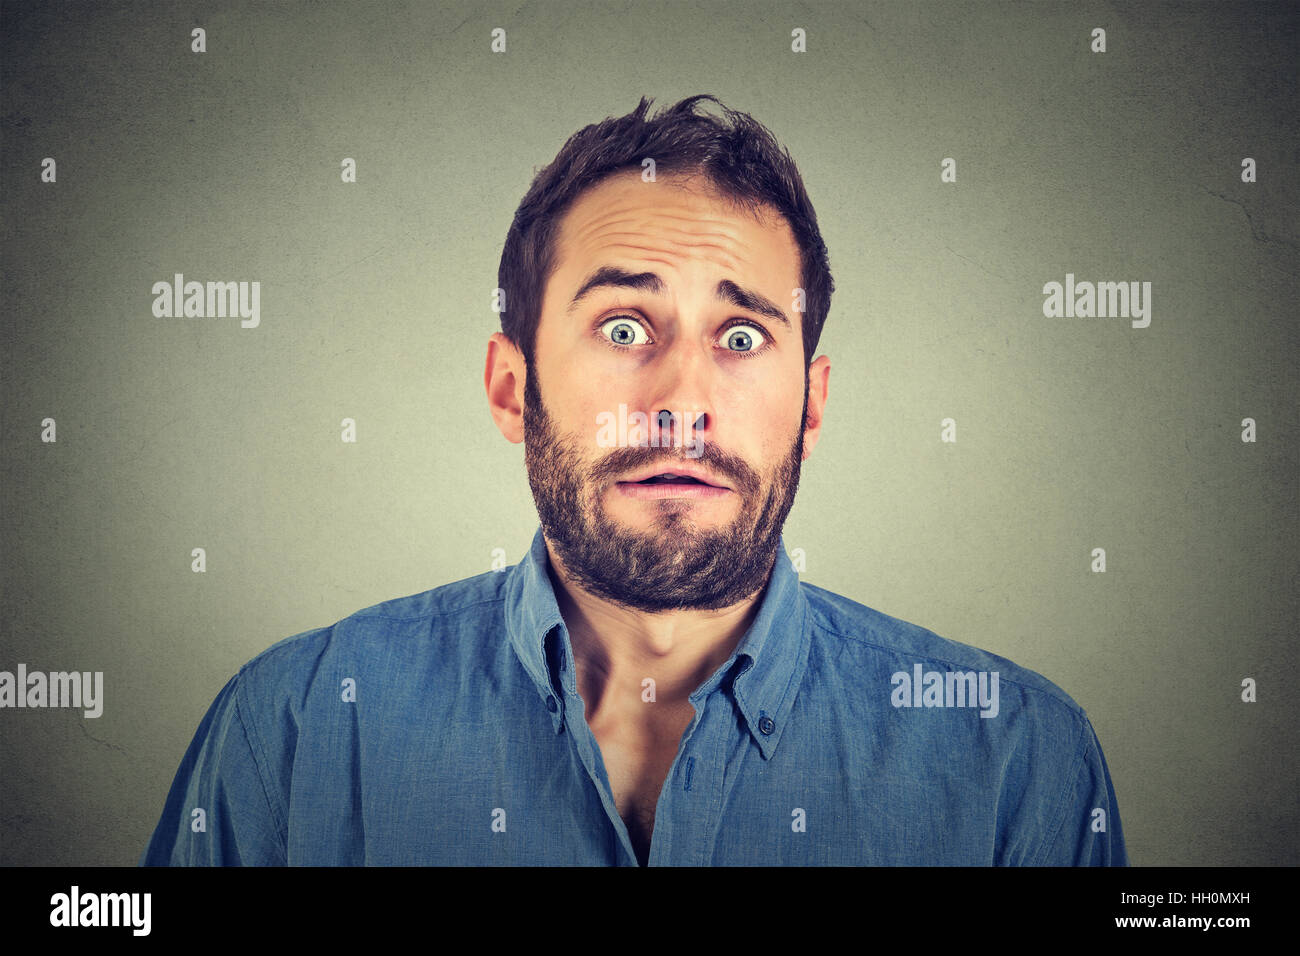 Concerned scared man - Stock Image